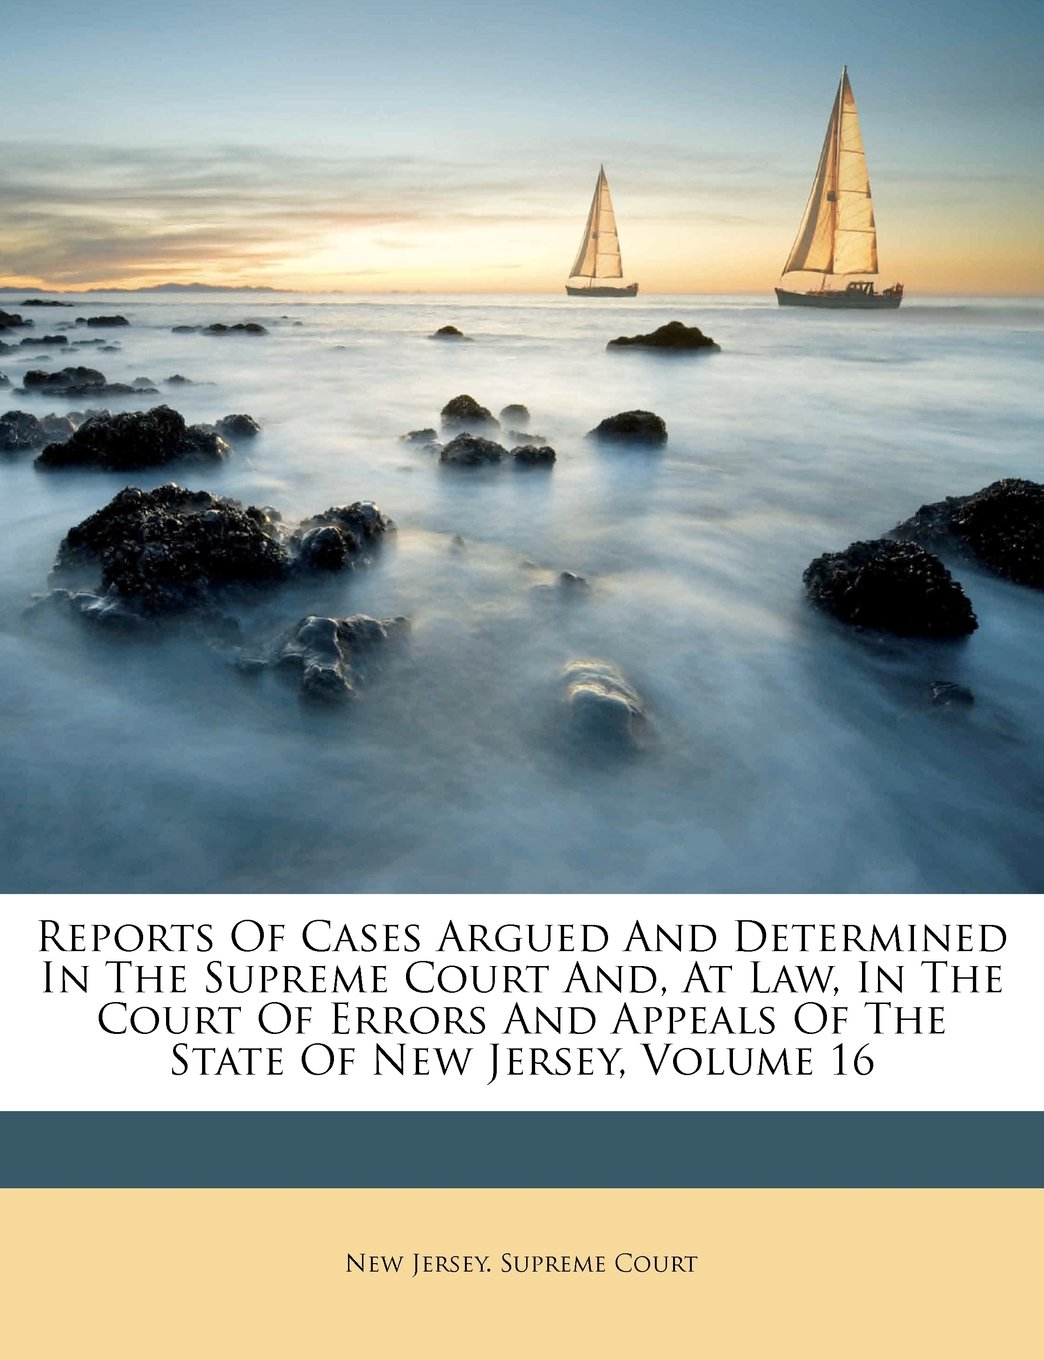 Download Reports Of Cases Argued And Determined In The Supreme Court And, At Law, In The Court Of Errors And Appeals Of The State Of New Jersey, Volume 16 PDF